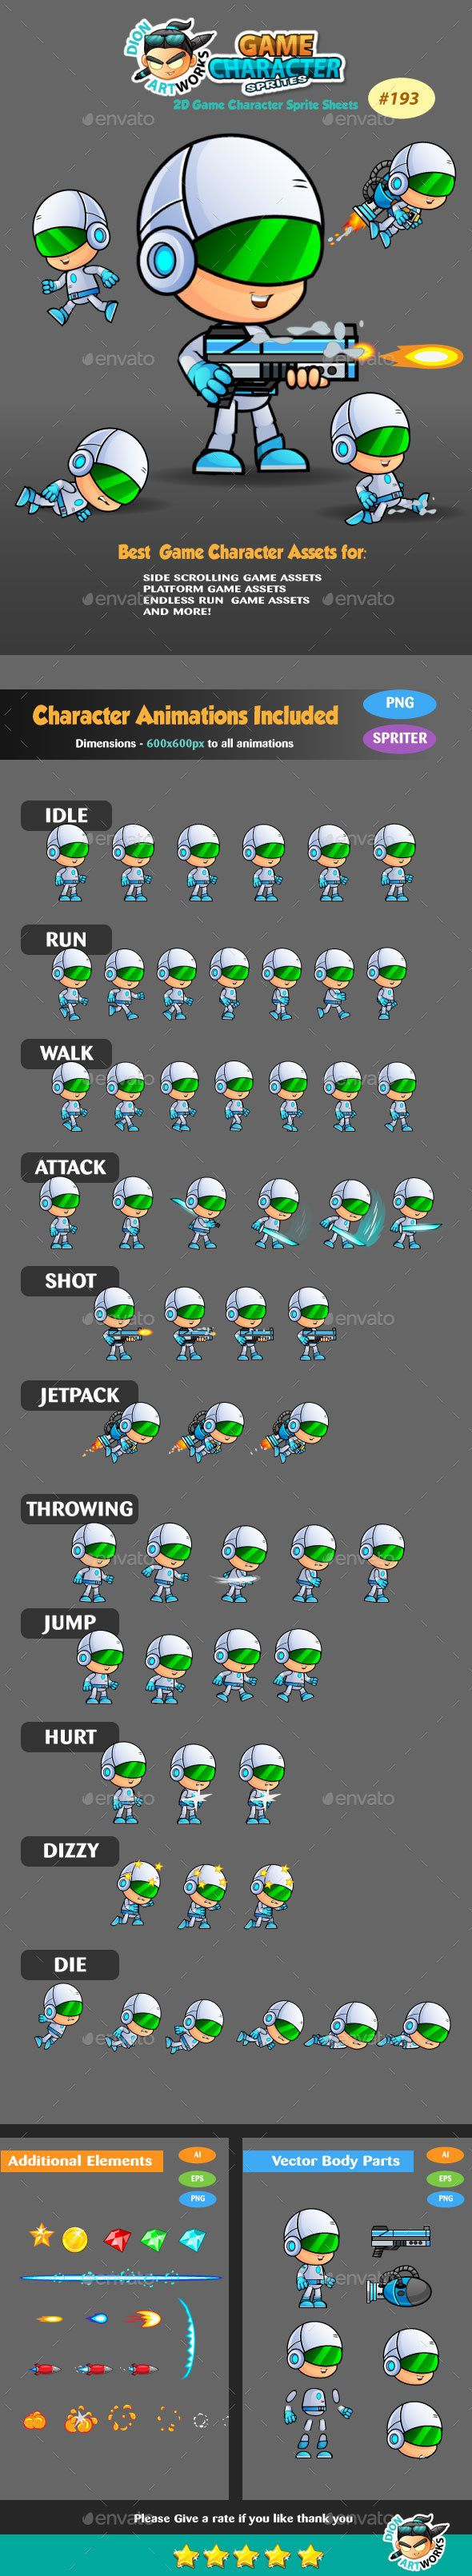 2D Game Character Sprites 193 - #Sprites #Game #Assets Download here: https://graphicriver.net/item/2d-game-character-sprites-193/15019924?ref=alena994